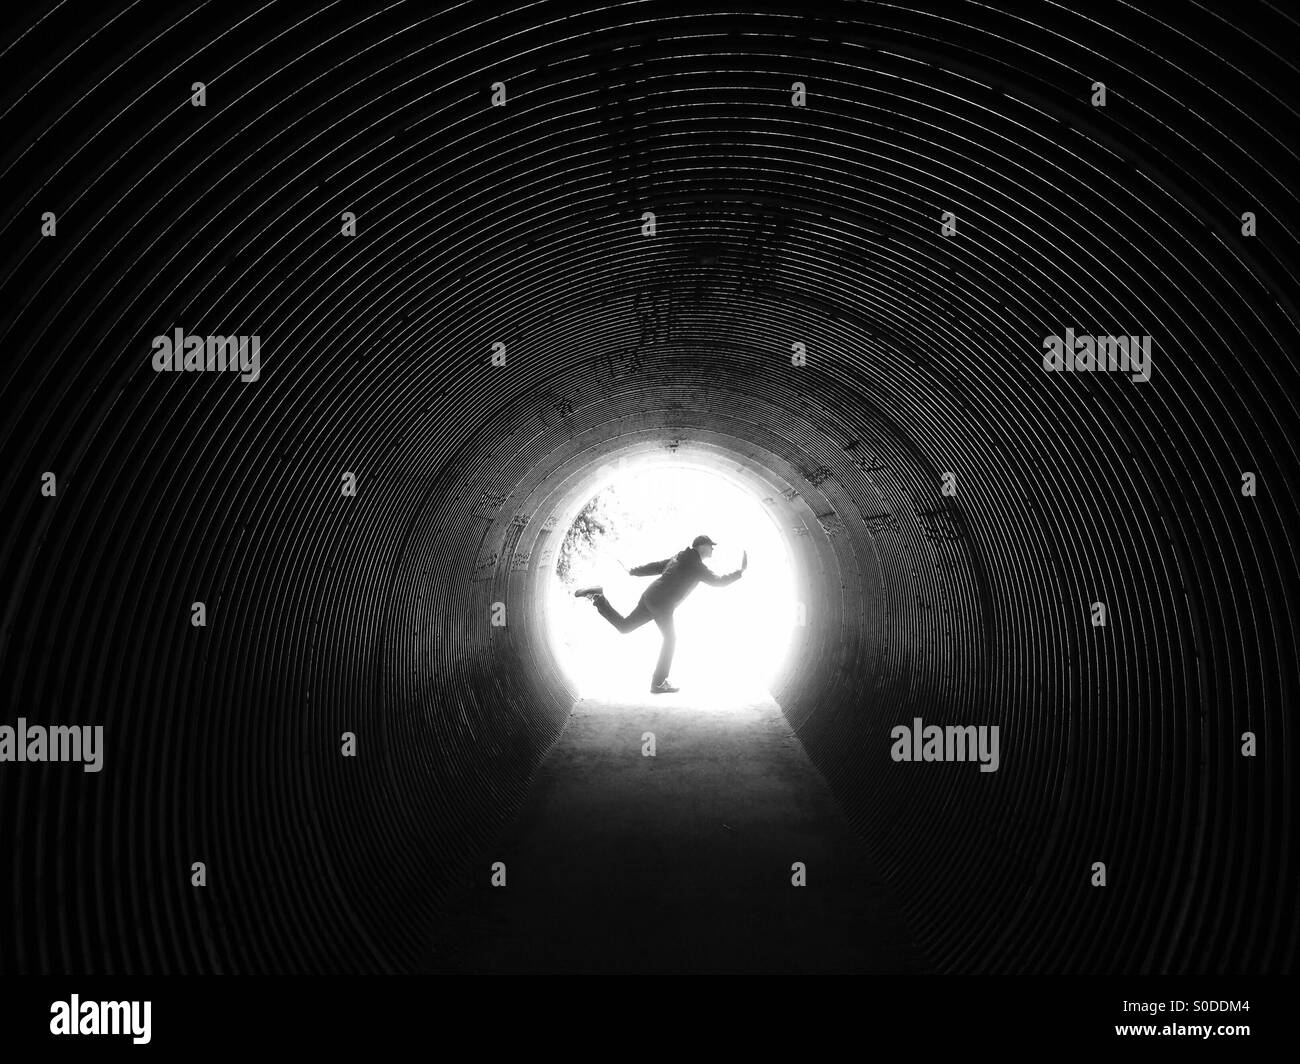 Man posing in tunnel - Stock Image